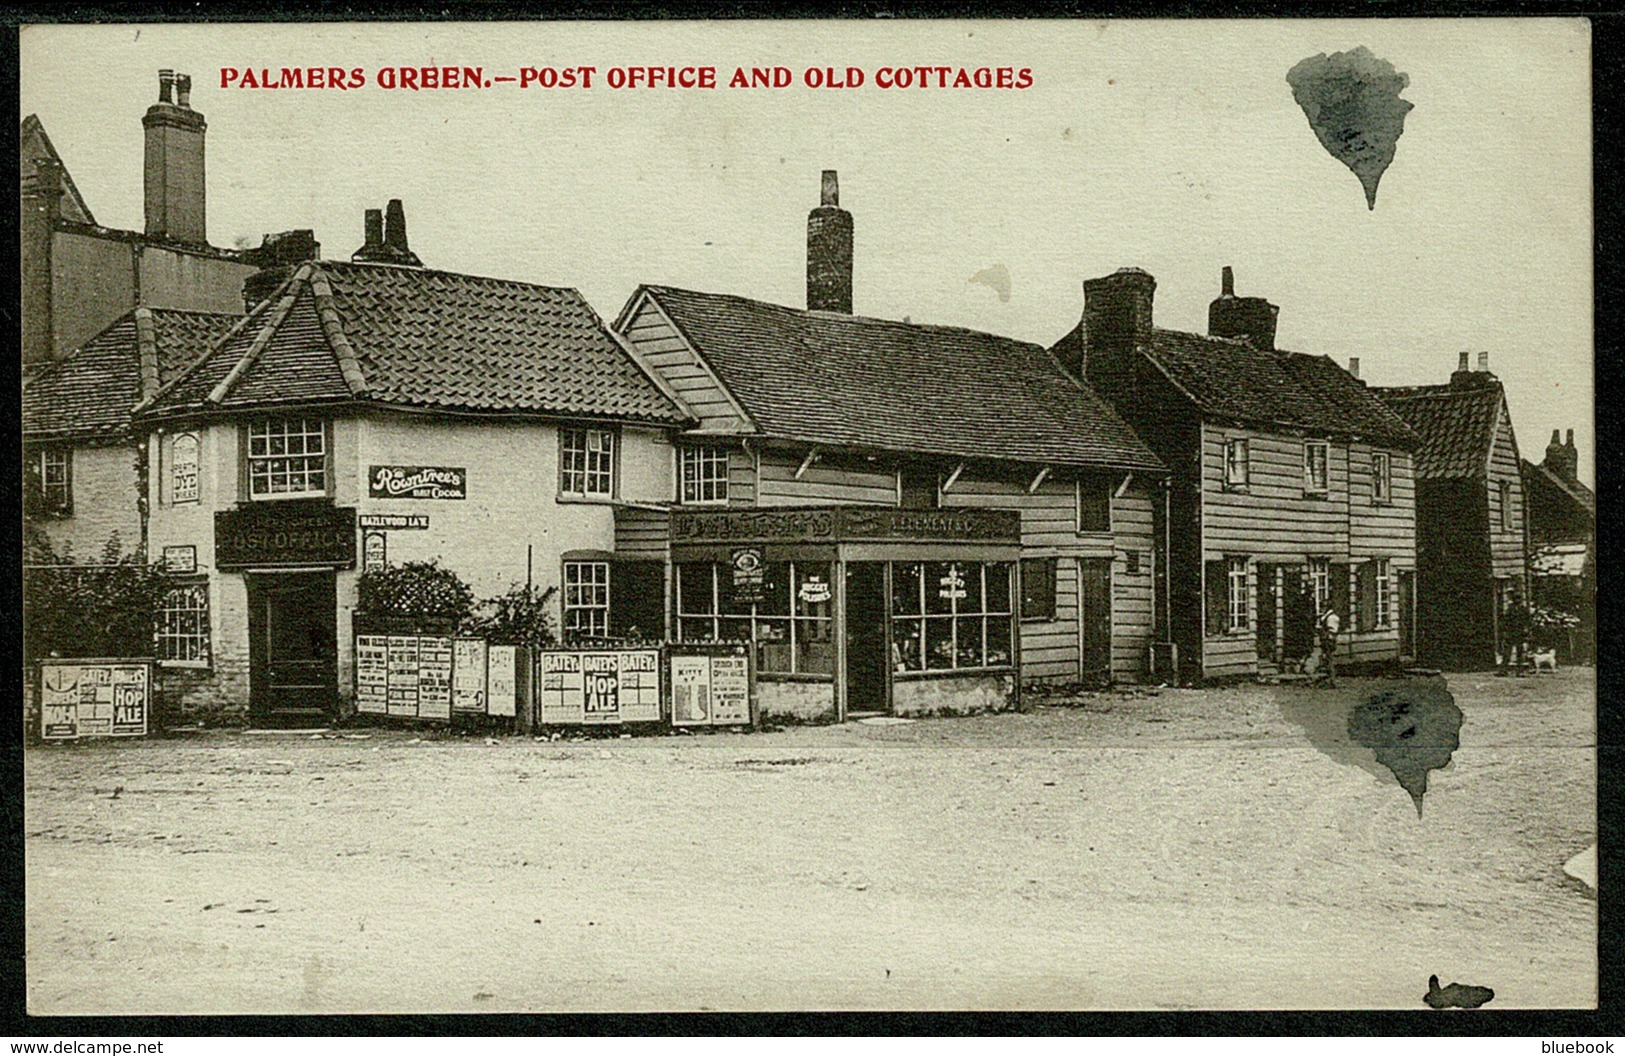 Ref 1248 - 1905 Postcard - Post Office & Old Cottages - Palmers Green London - London Suburbs